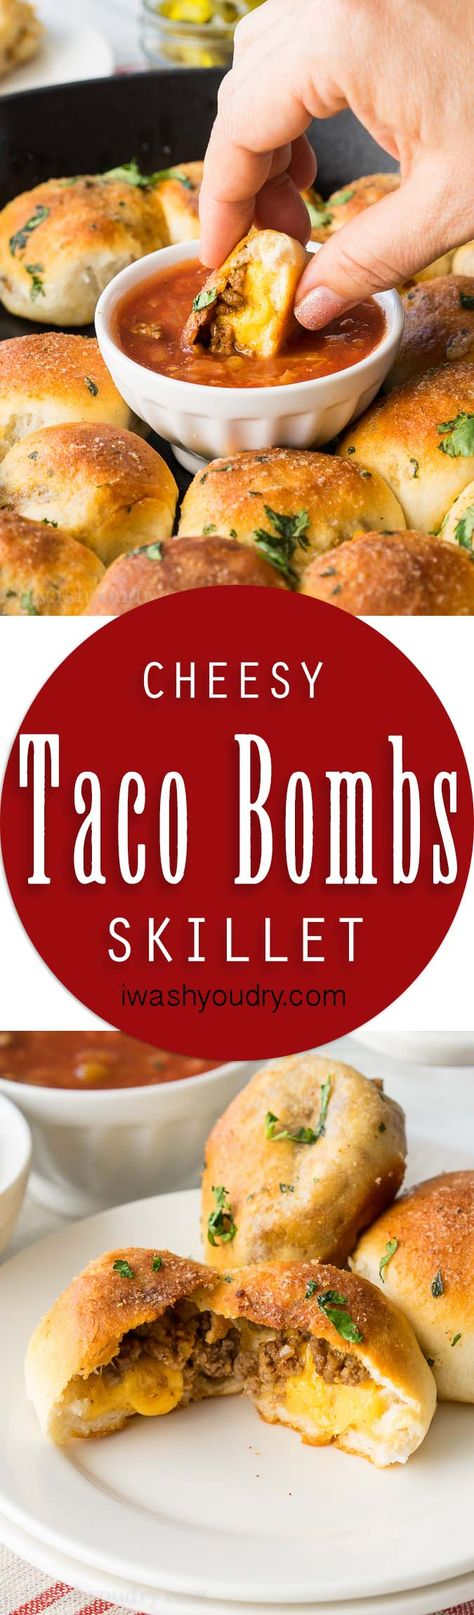 This Cheesy Taco Bombs Skillet is a quick and easy appetizer recipe that's filled with tender taco meat and gooey cheese!